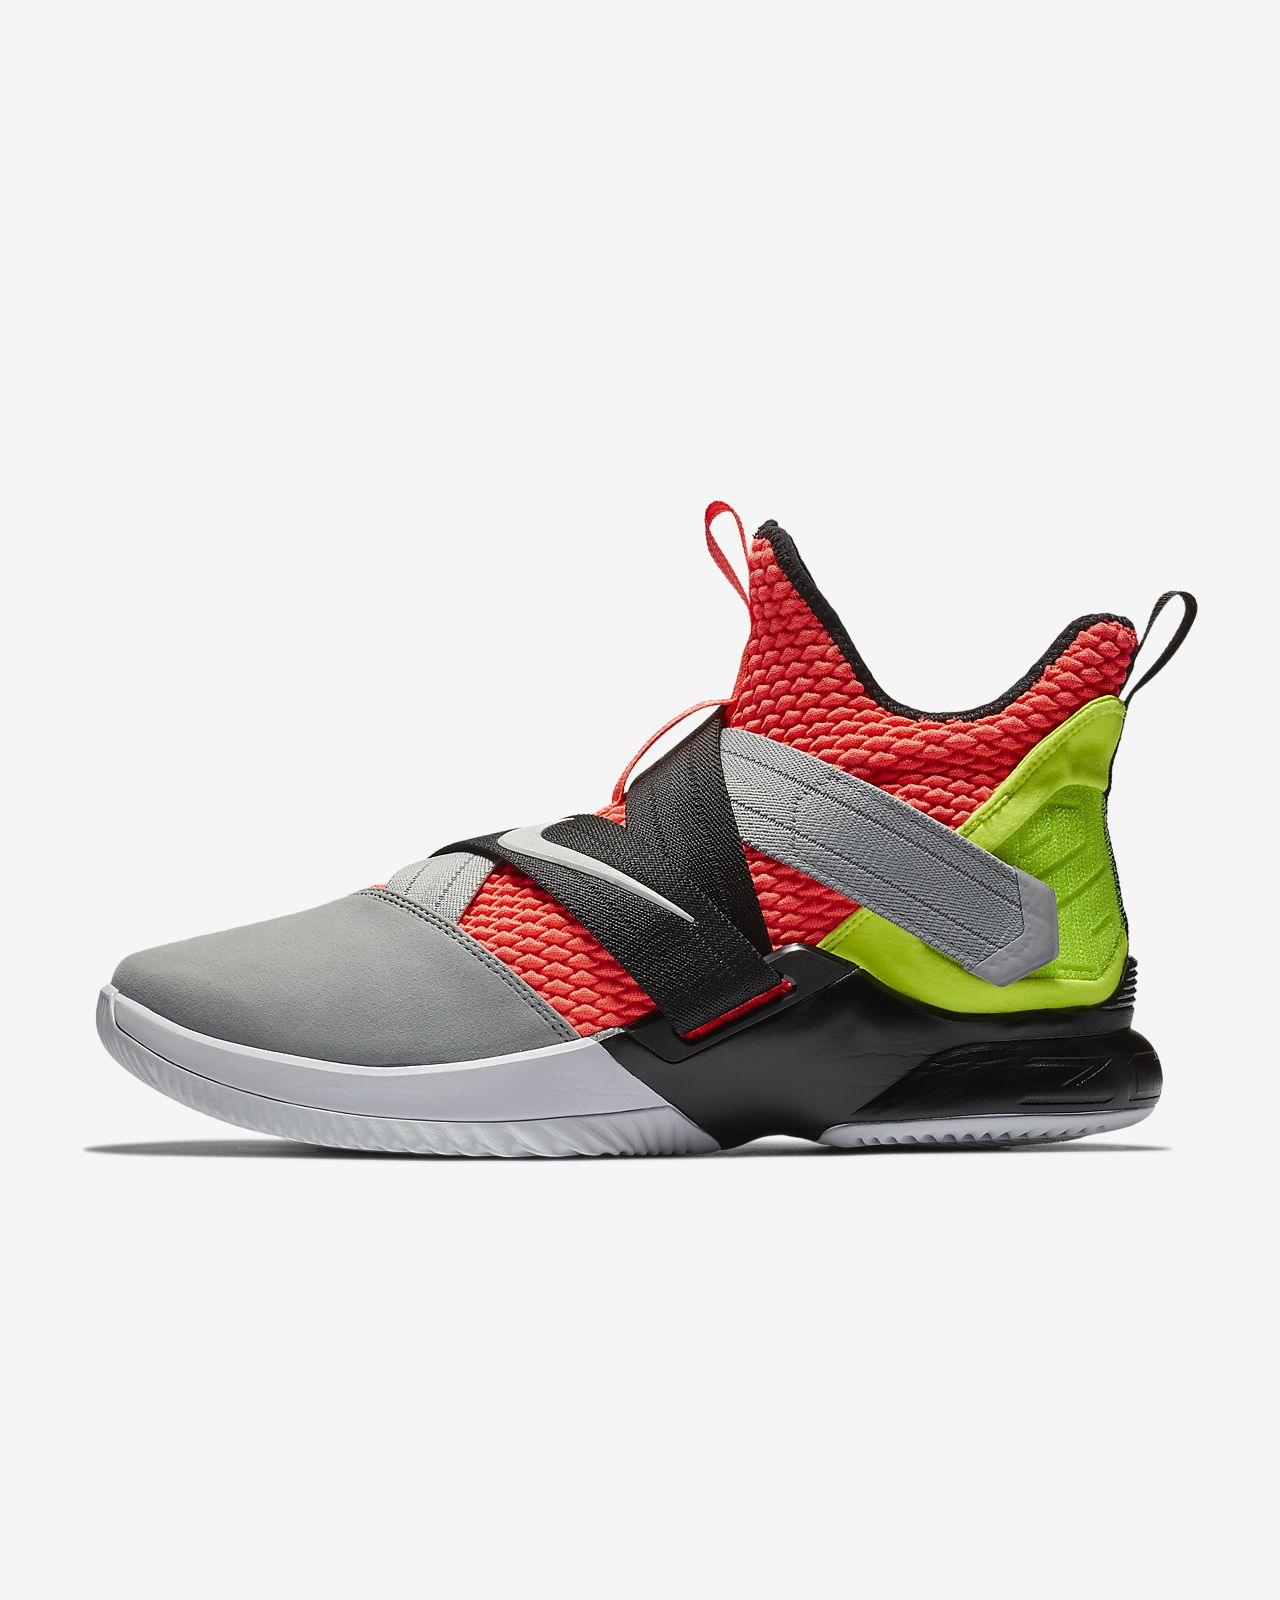 timeless design 23dda 8aaca LeBron Soldier 12 SFG Basketball Shoe